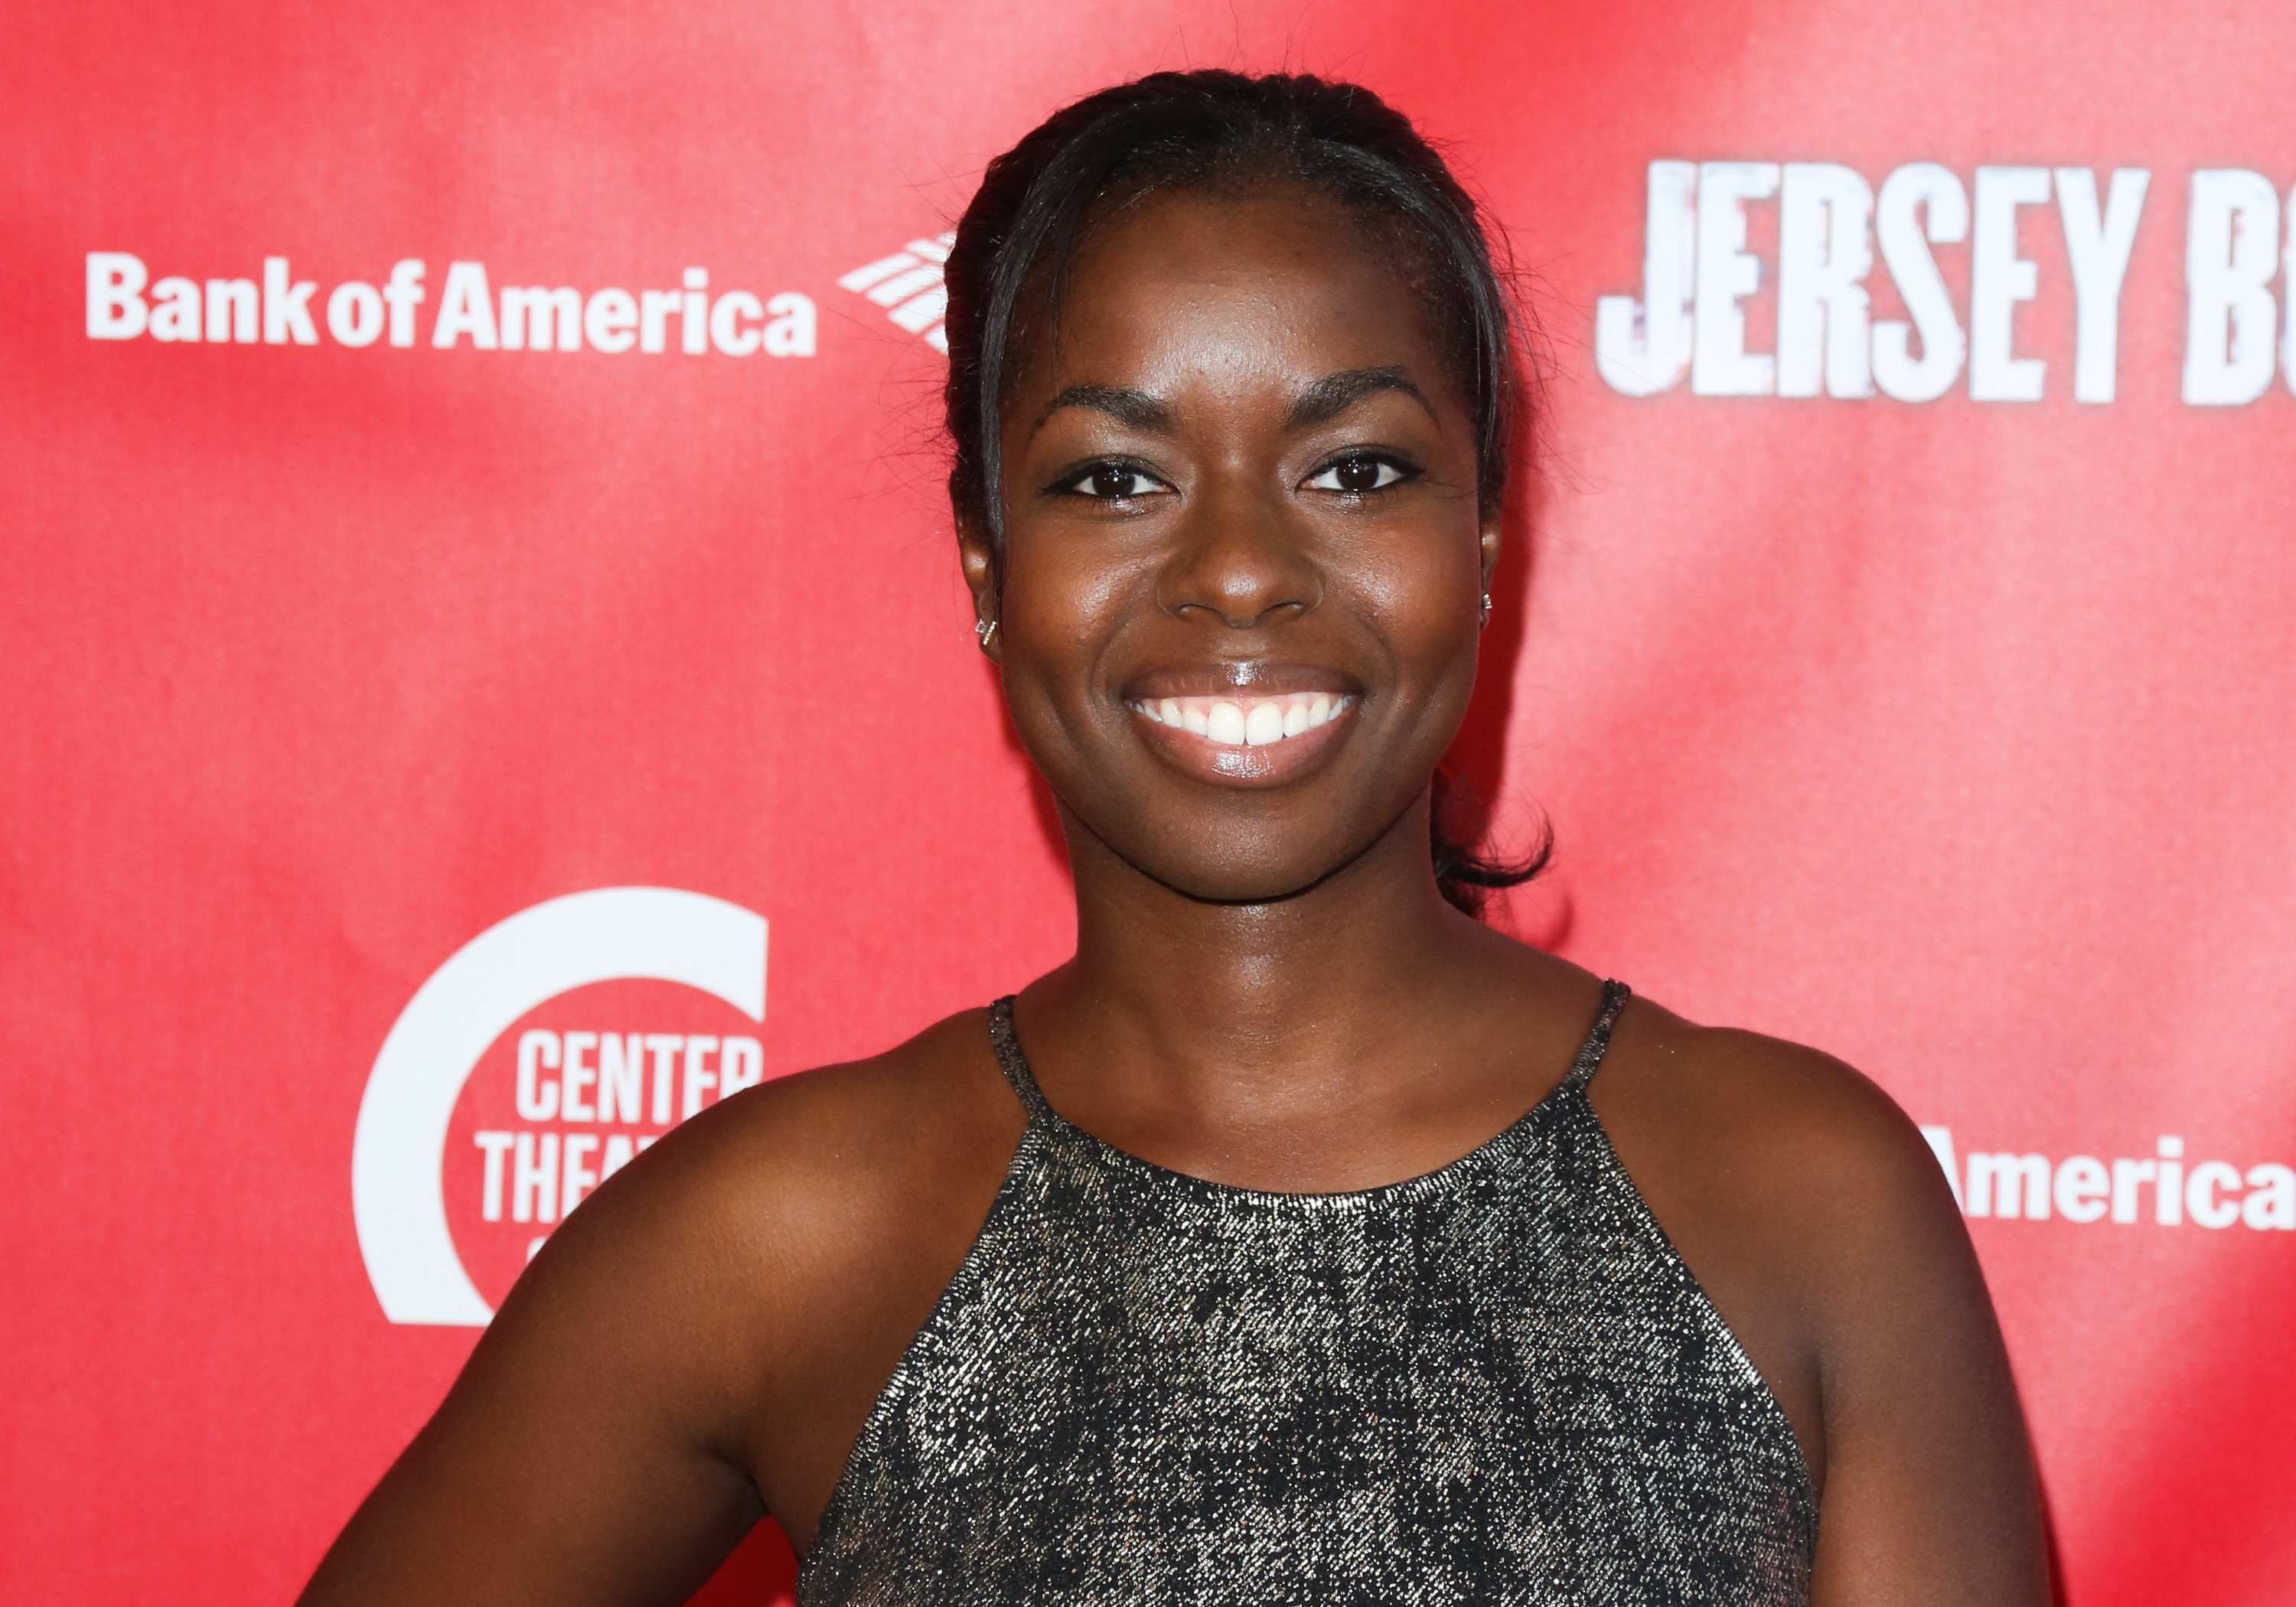 """Camille Winbush pictured at the opening night of """"Jersey Boys"""" at the Ahmanson Theatre on May 18, 2017 in Los Angeles, California 